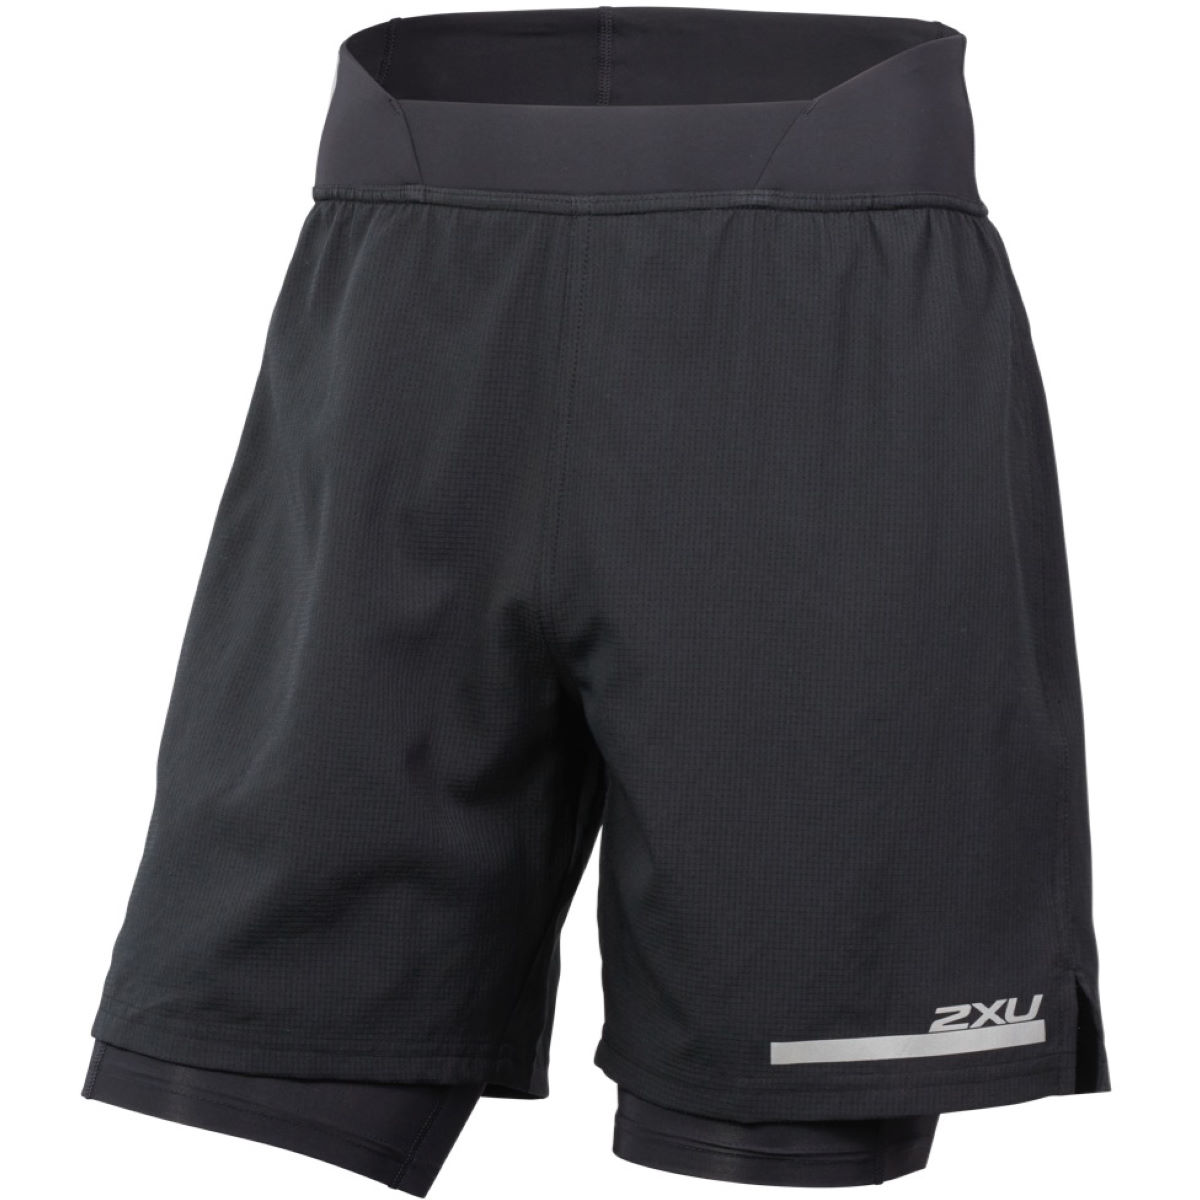 "2XU Run 2 in 1 Compression 7"" Short - Mallas cortas de compresión"